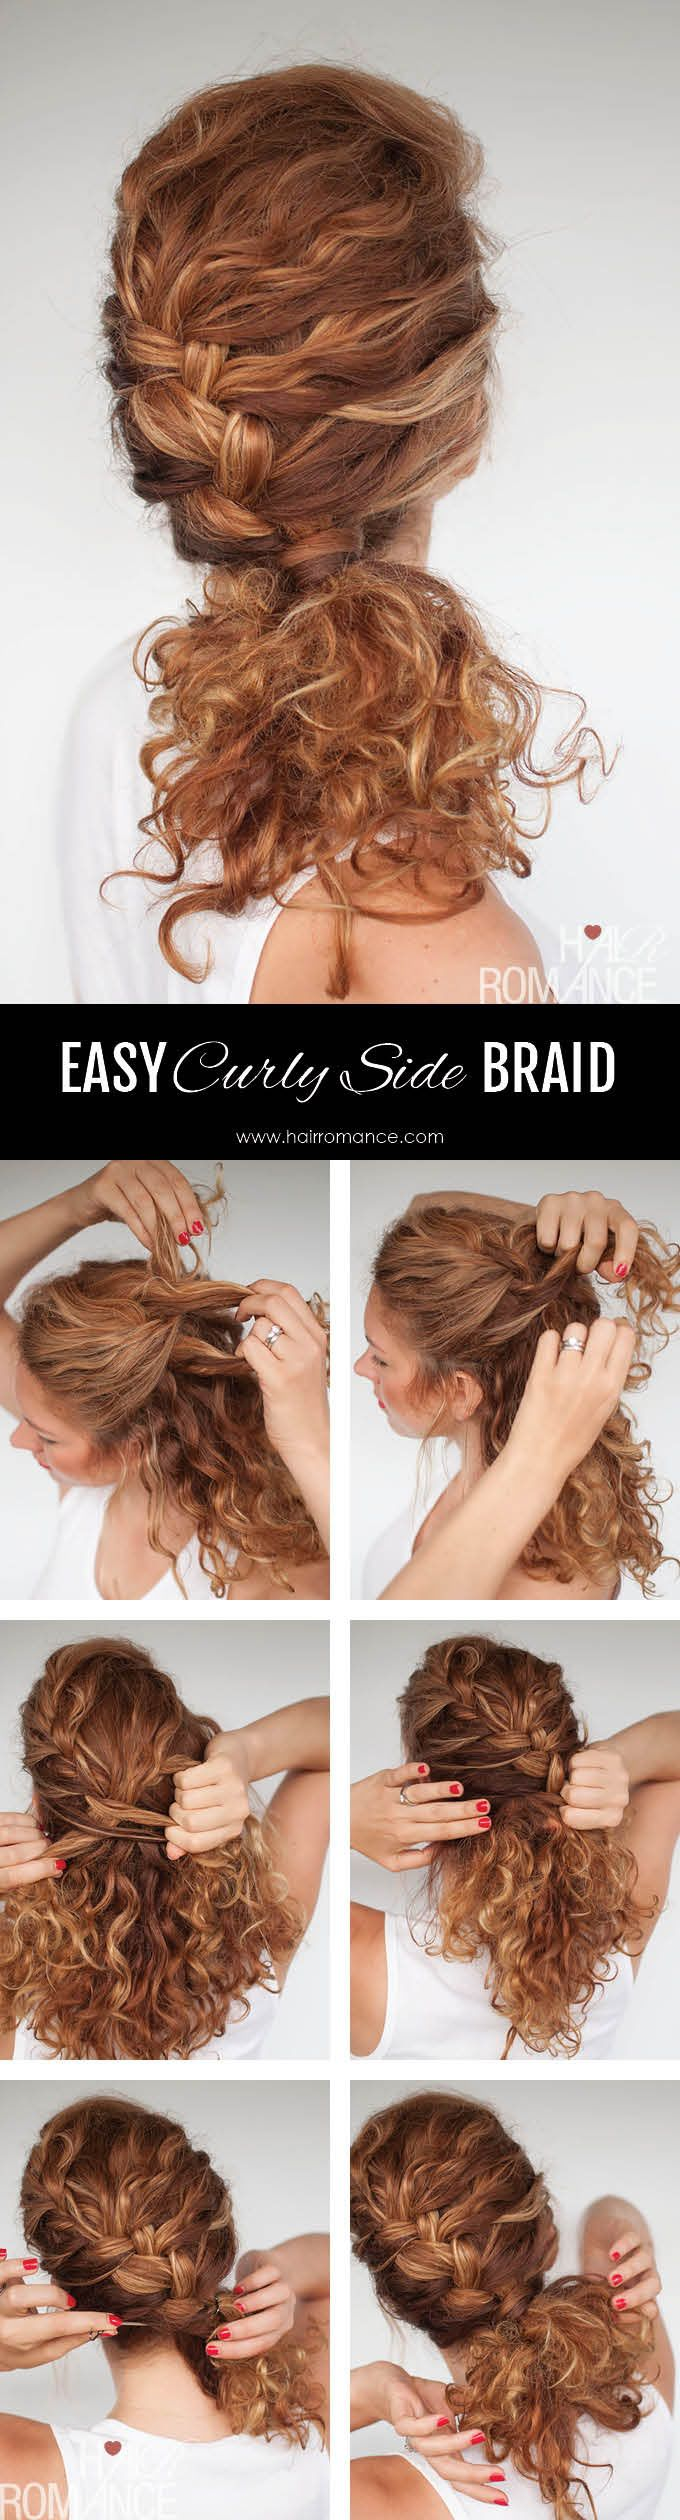 Hair romance easy everyday curly hairstyle tutorials u the curly